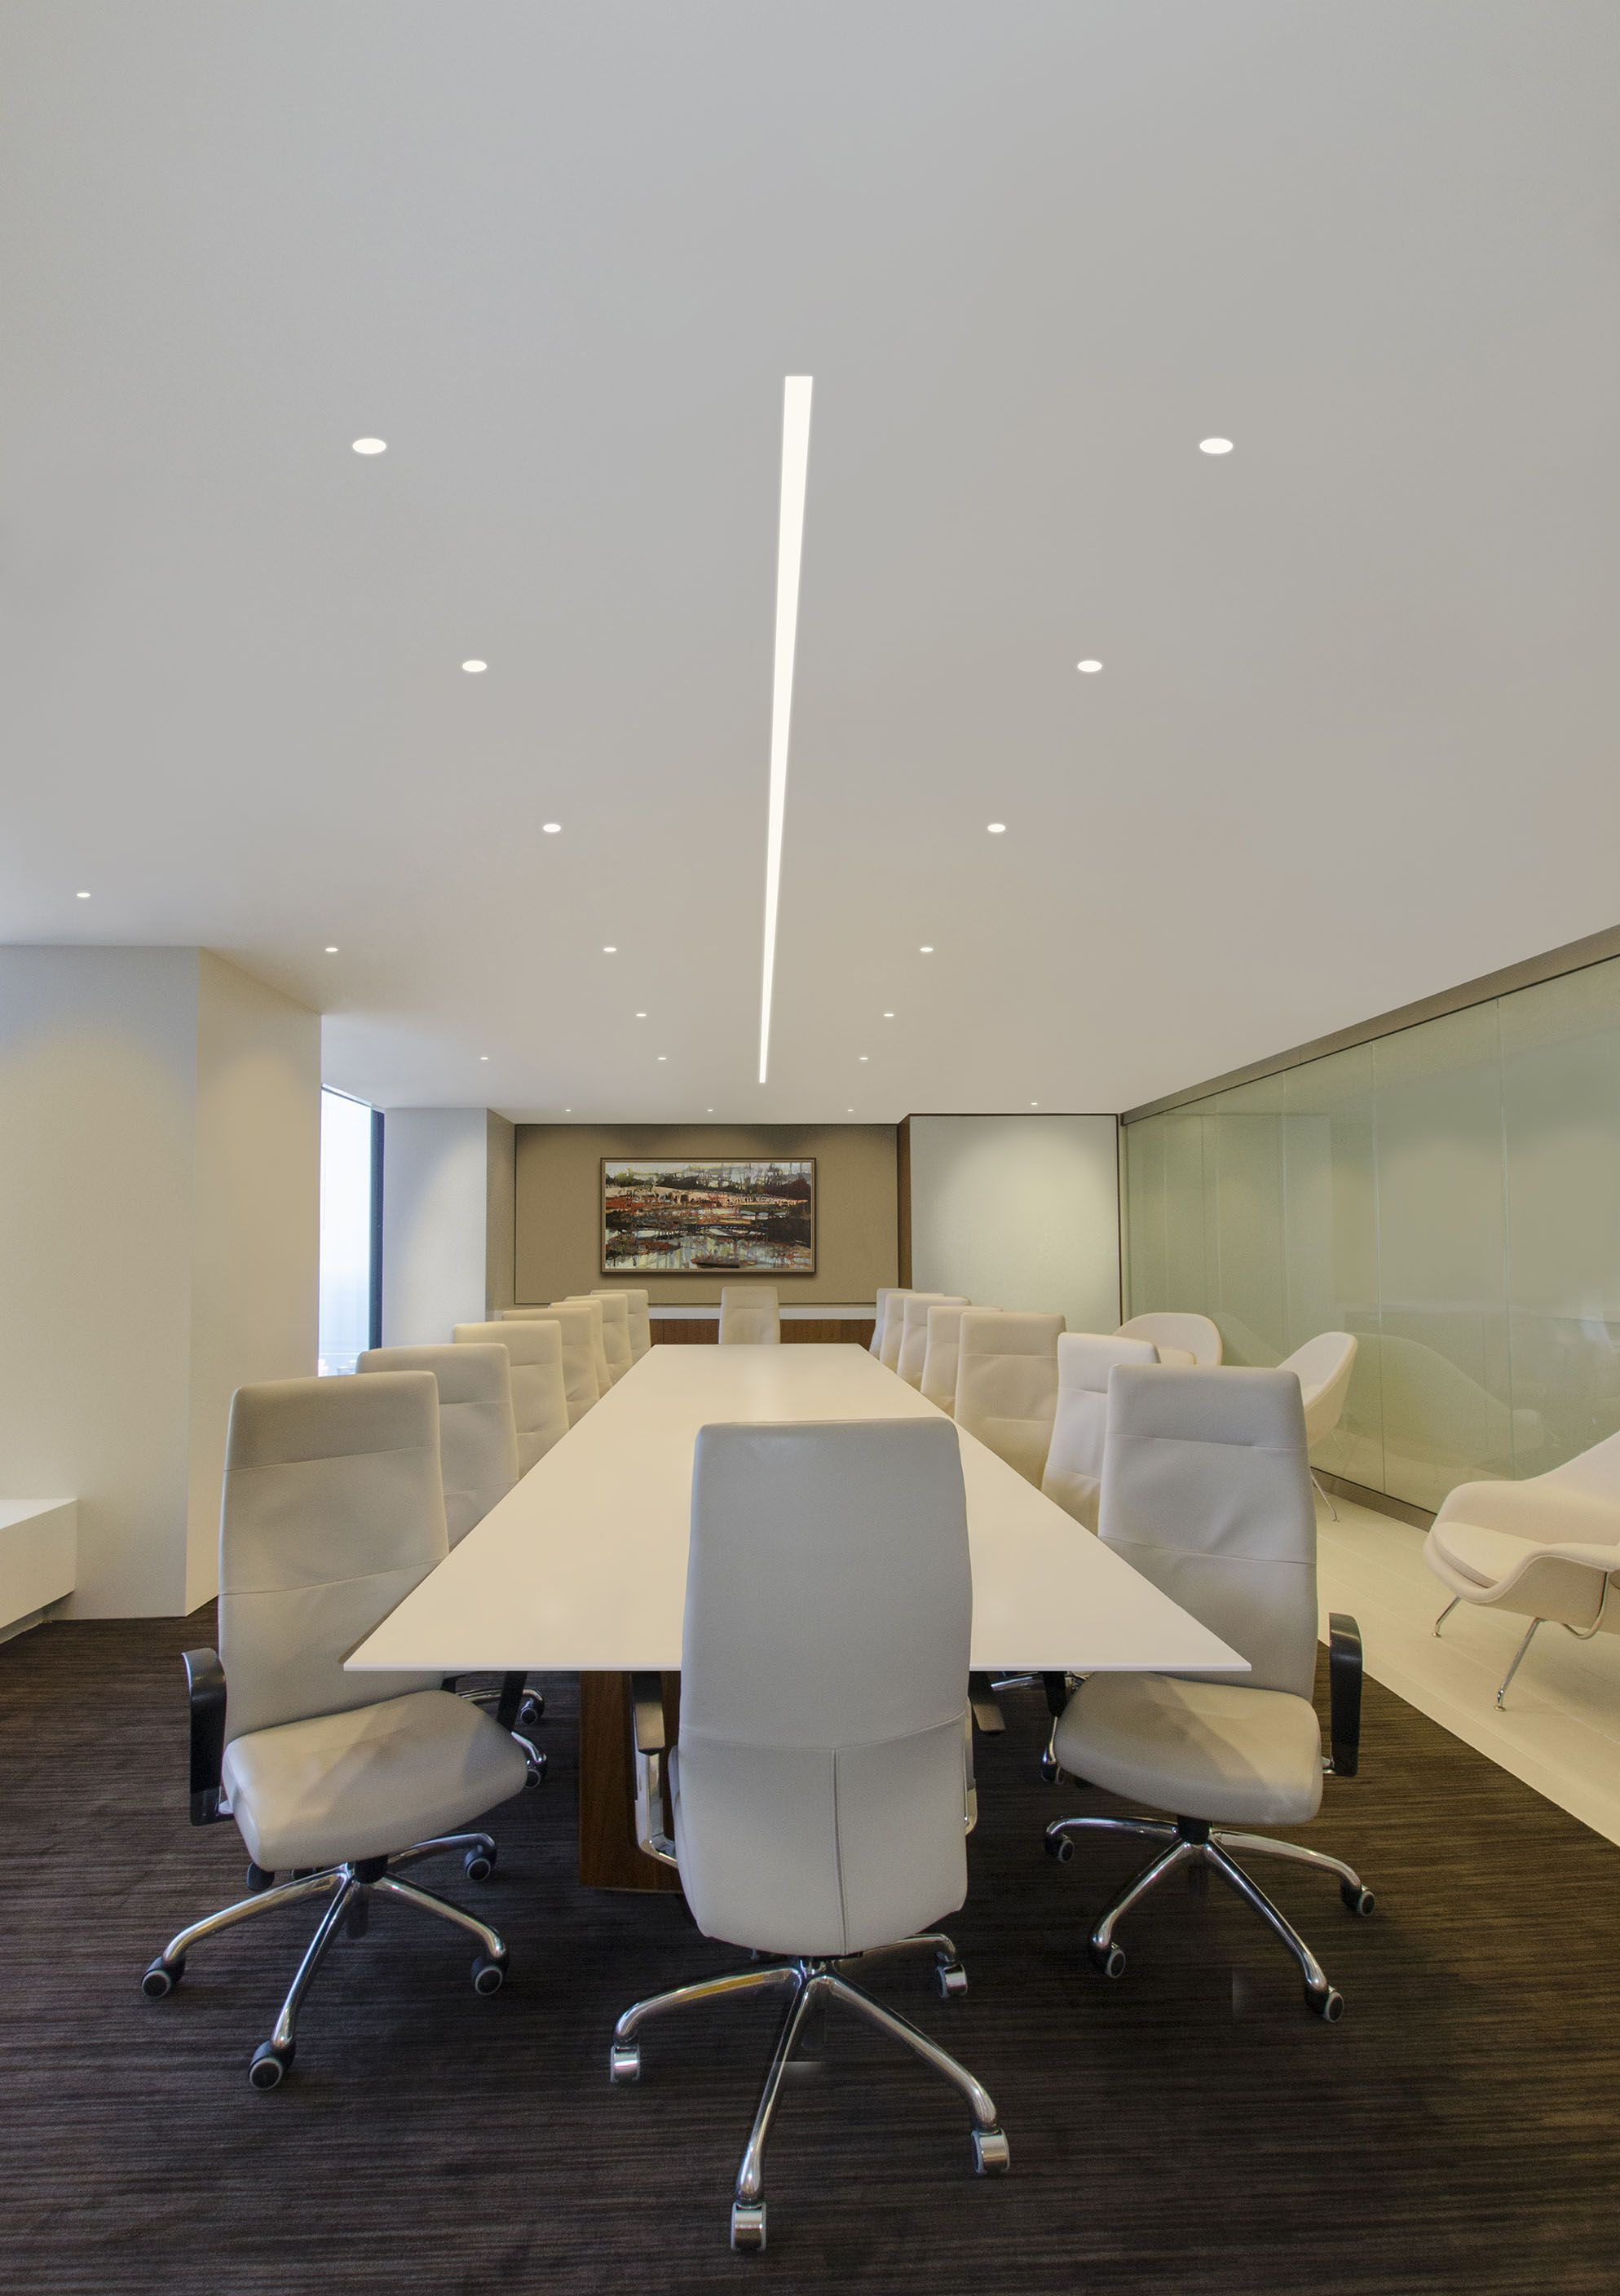 Conference Room Lighting Design: Modern Conference Room Lighting Idea